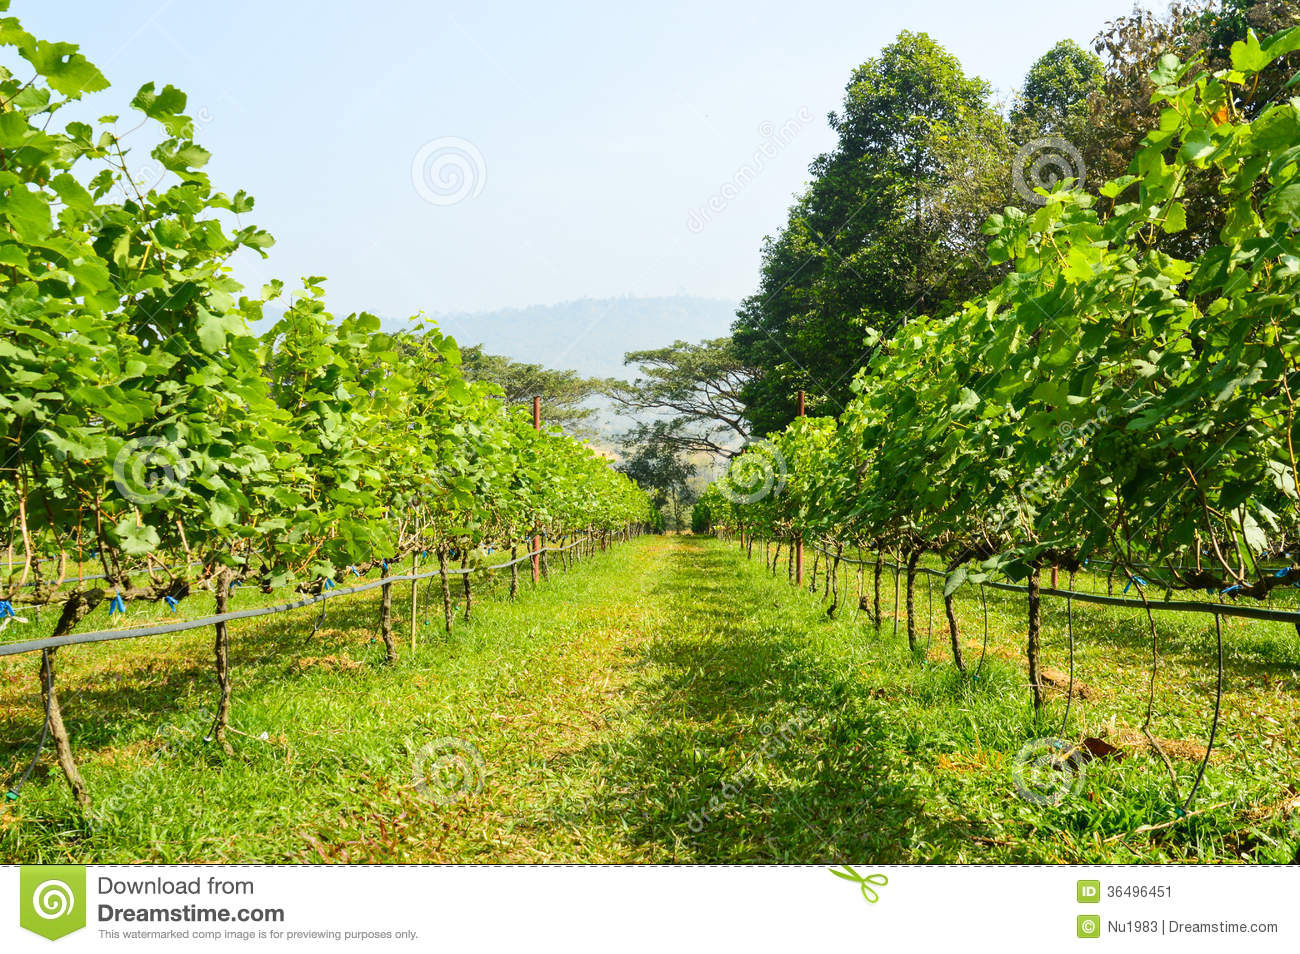 Grape Farm Stock Image - Image: 36496451